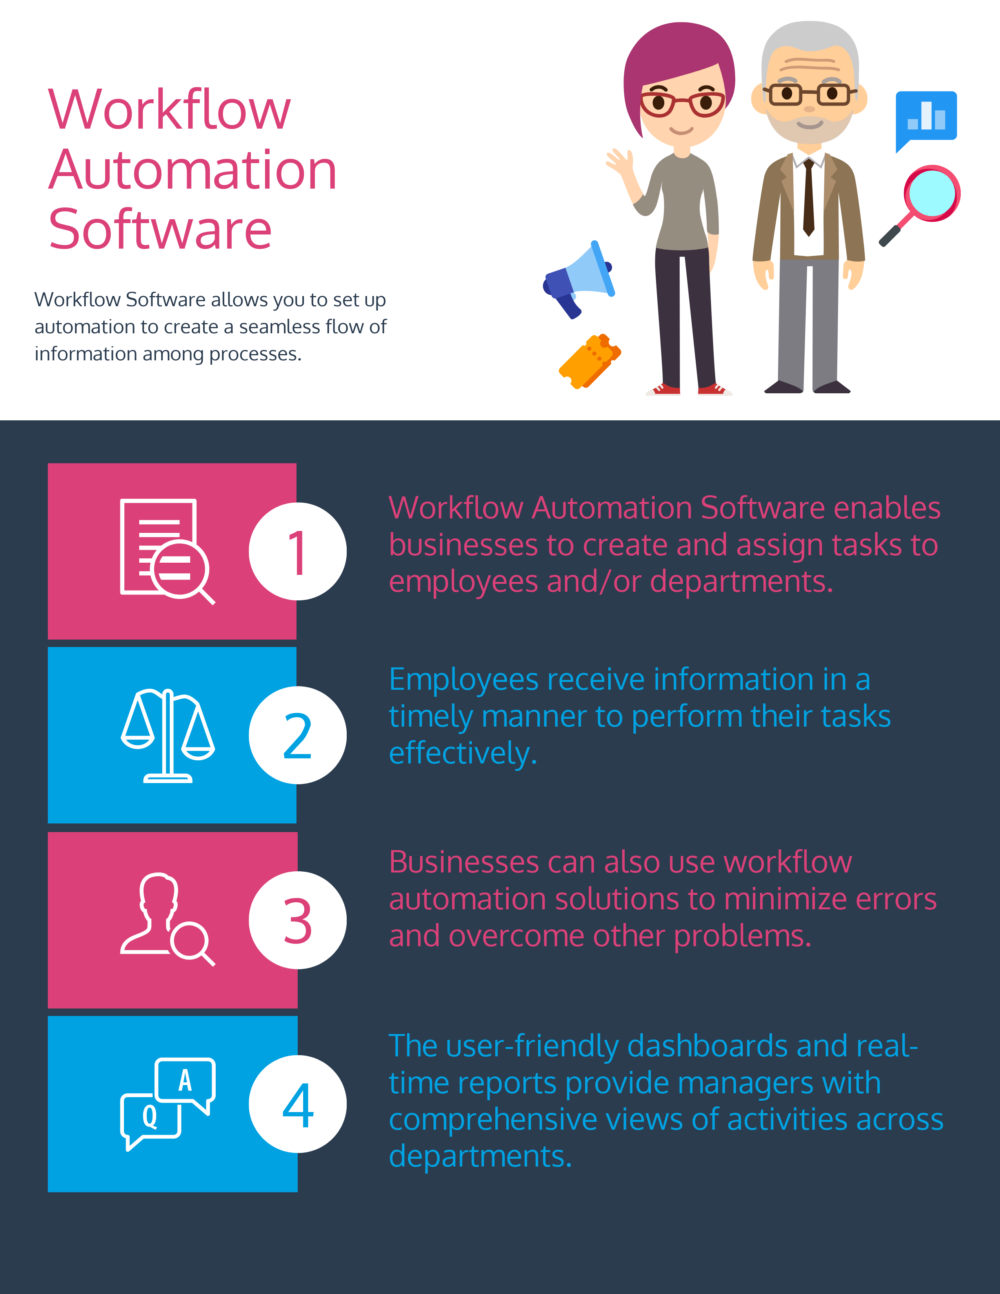 How to Select the Best Workflow Automation Software for Your Business